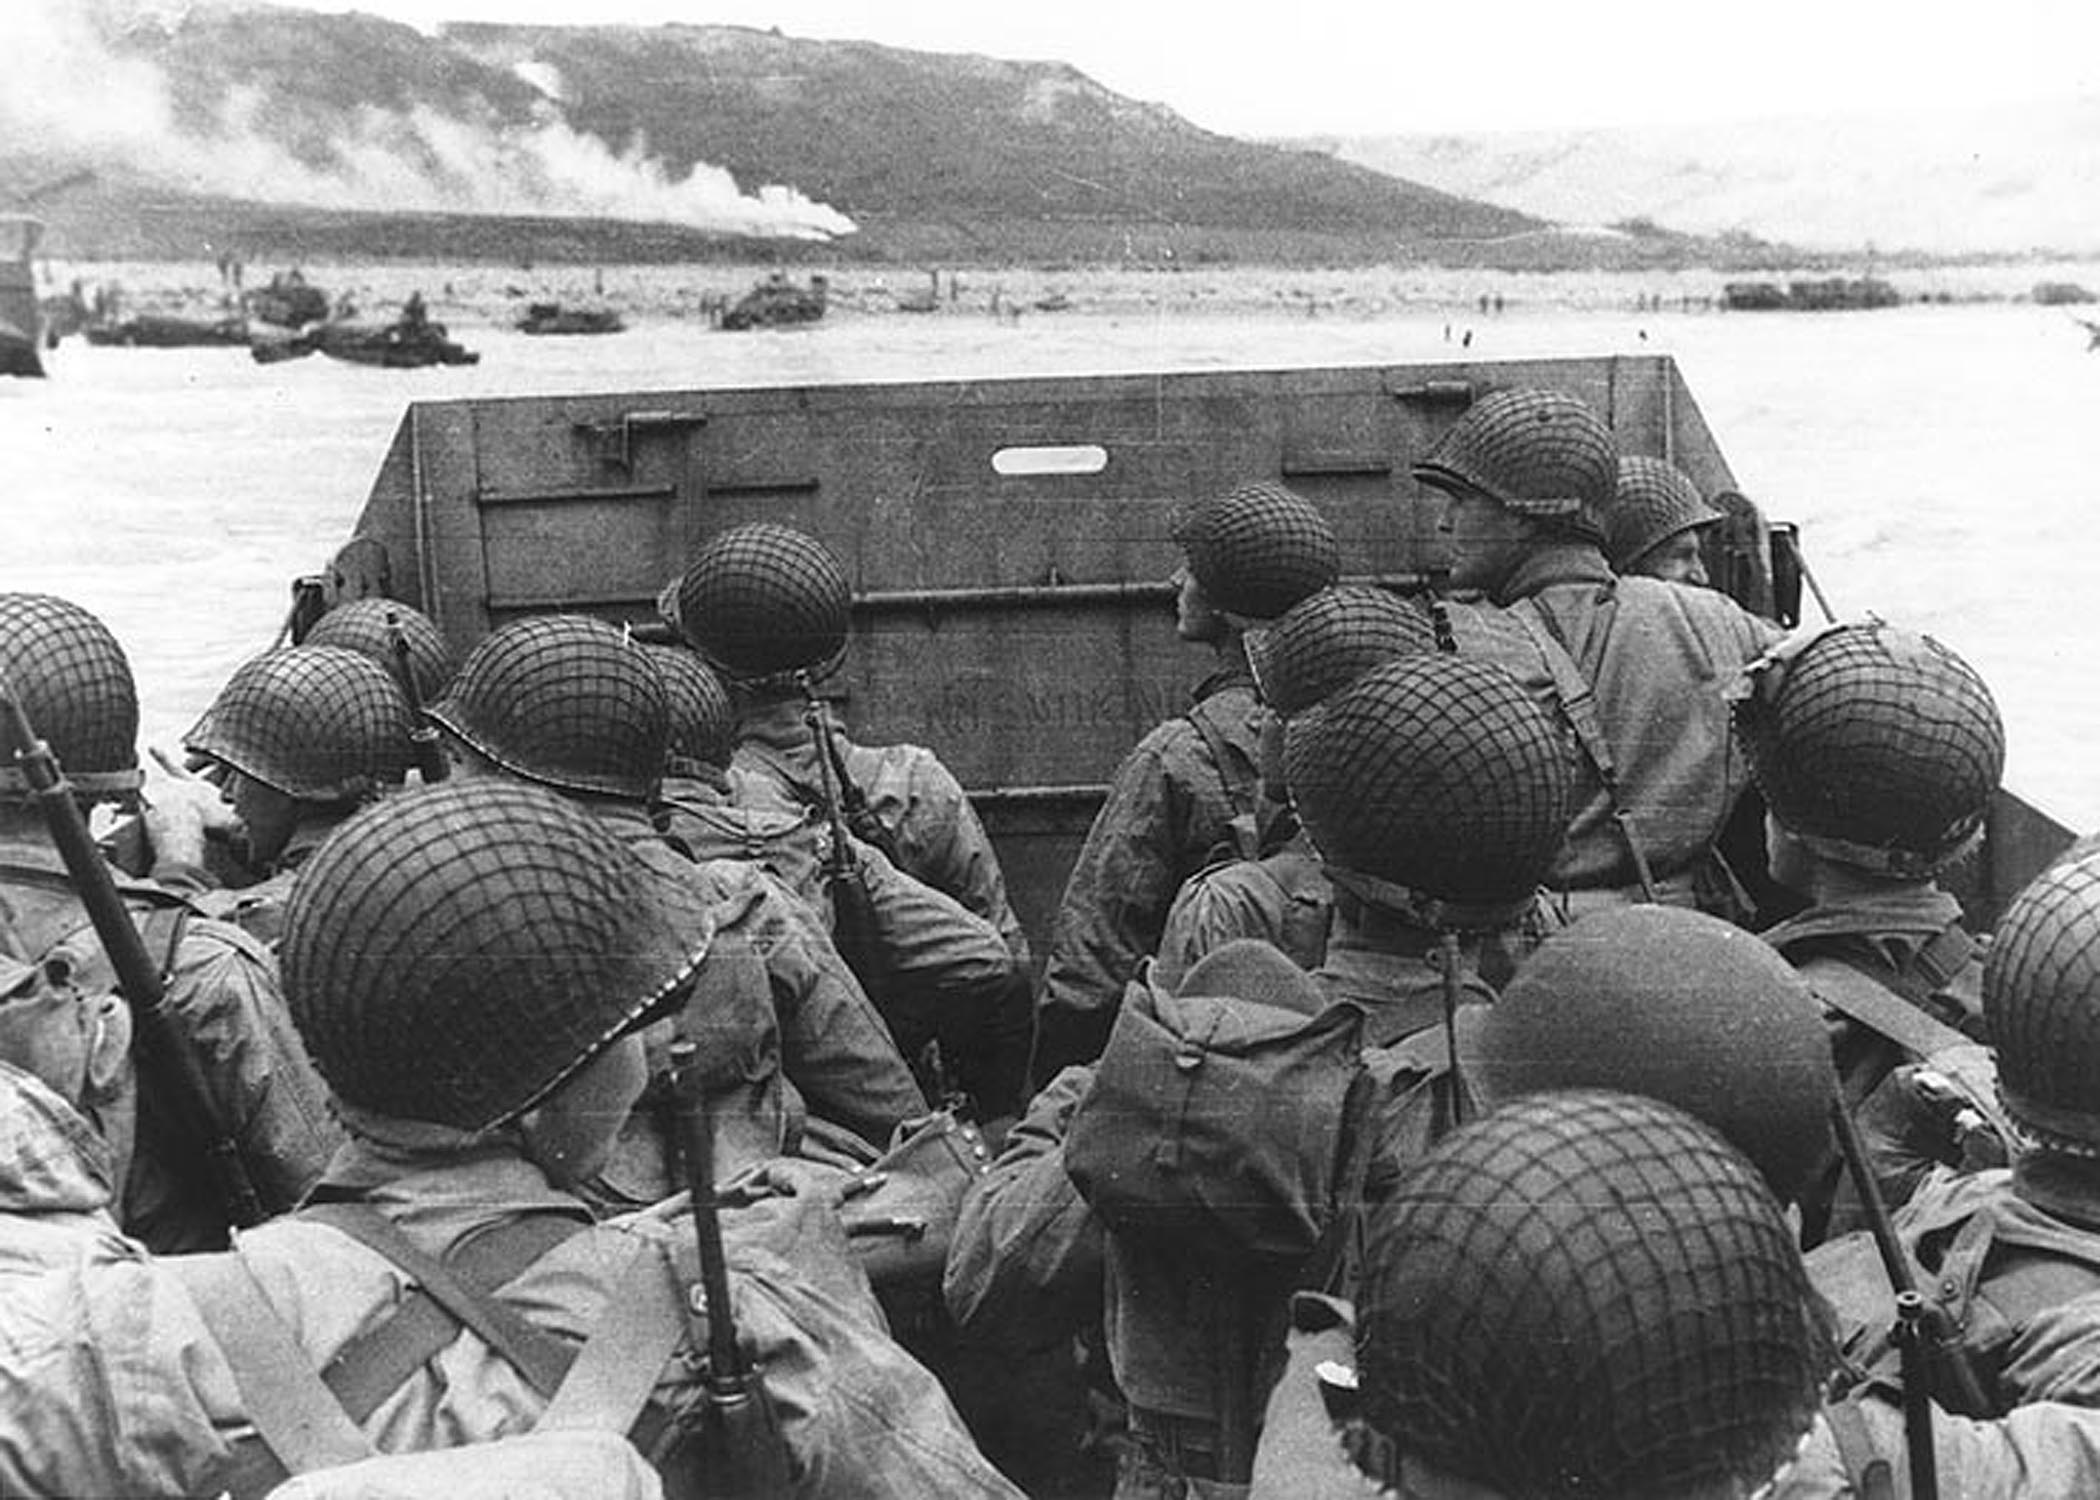 Deployed service members reflect on  D-Day